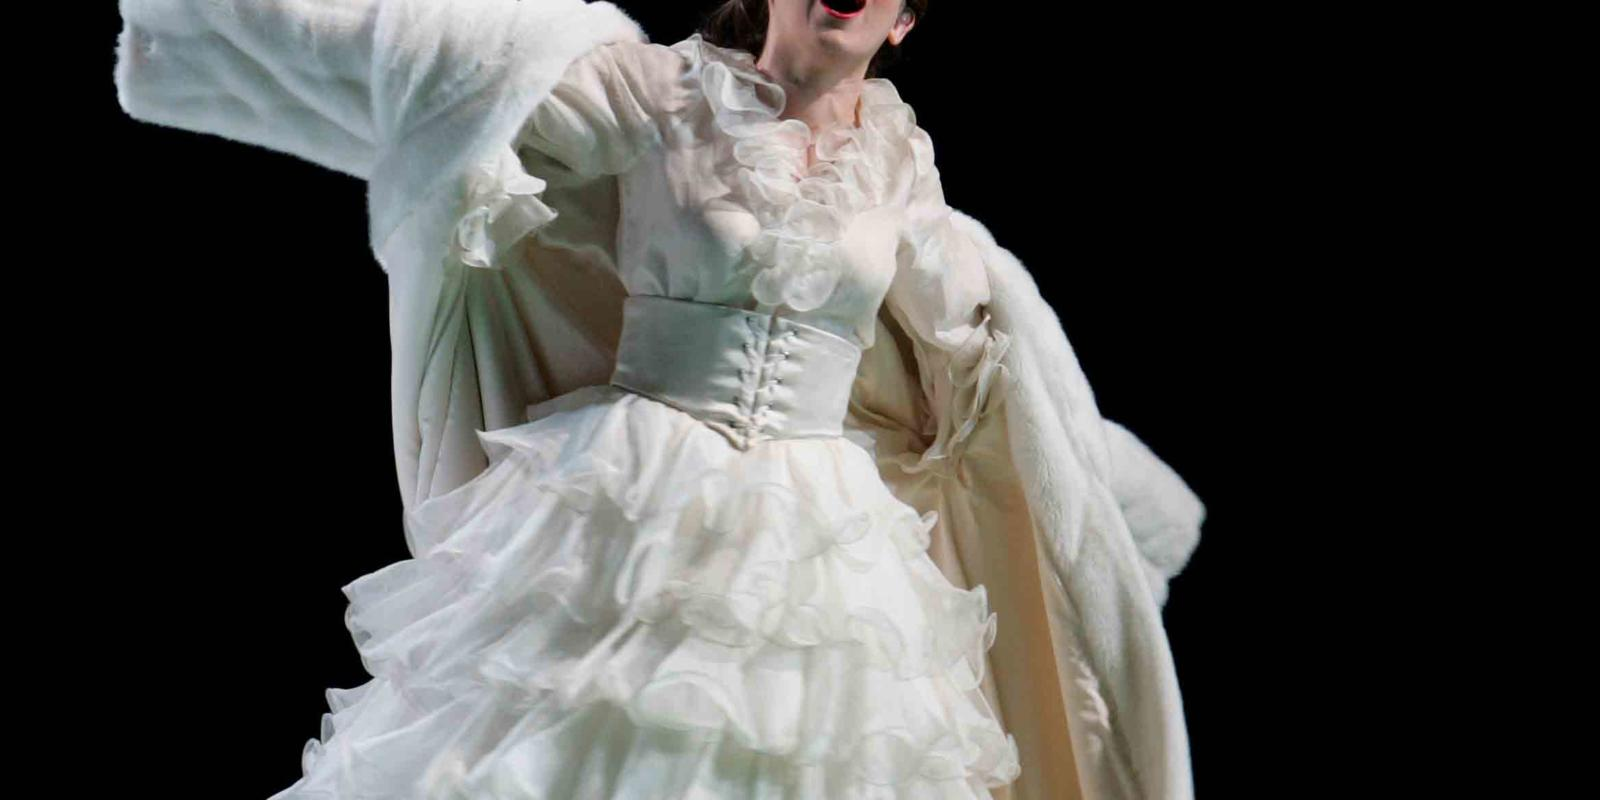 An image of Victoria Simmonds in ENO's 2004 production of A Midsummer Night's Dream